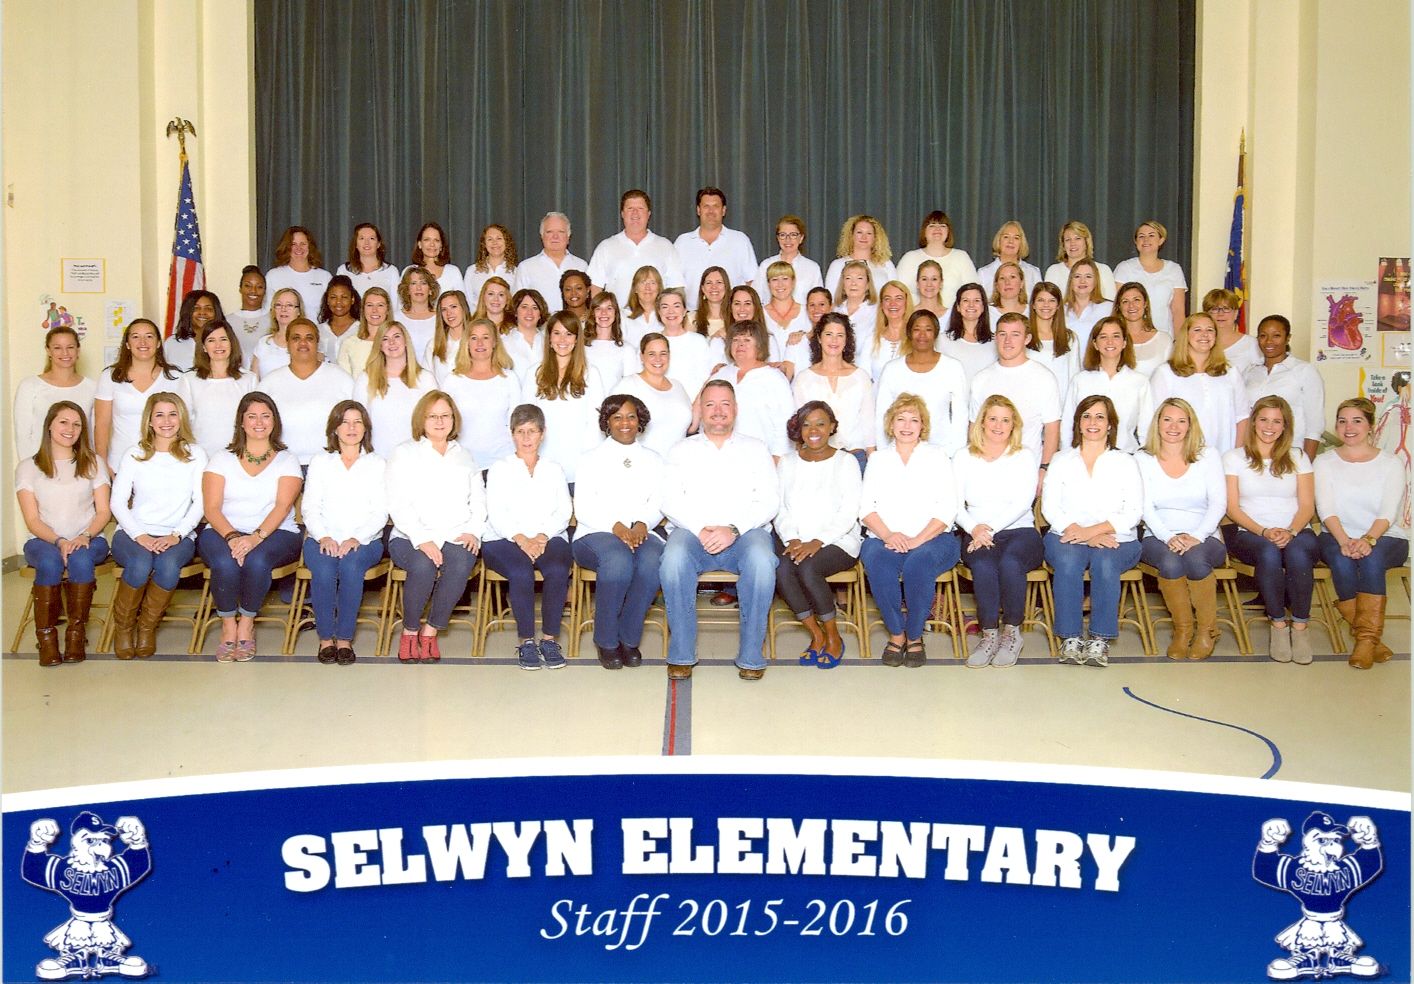 Selwyn Staff Photo 15-160001.jpg